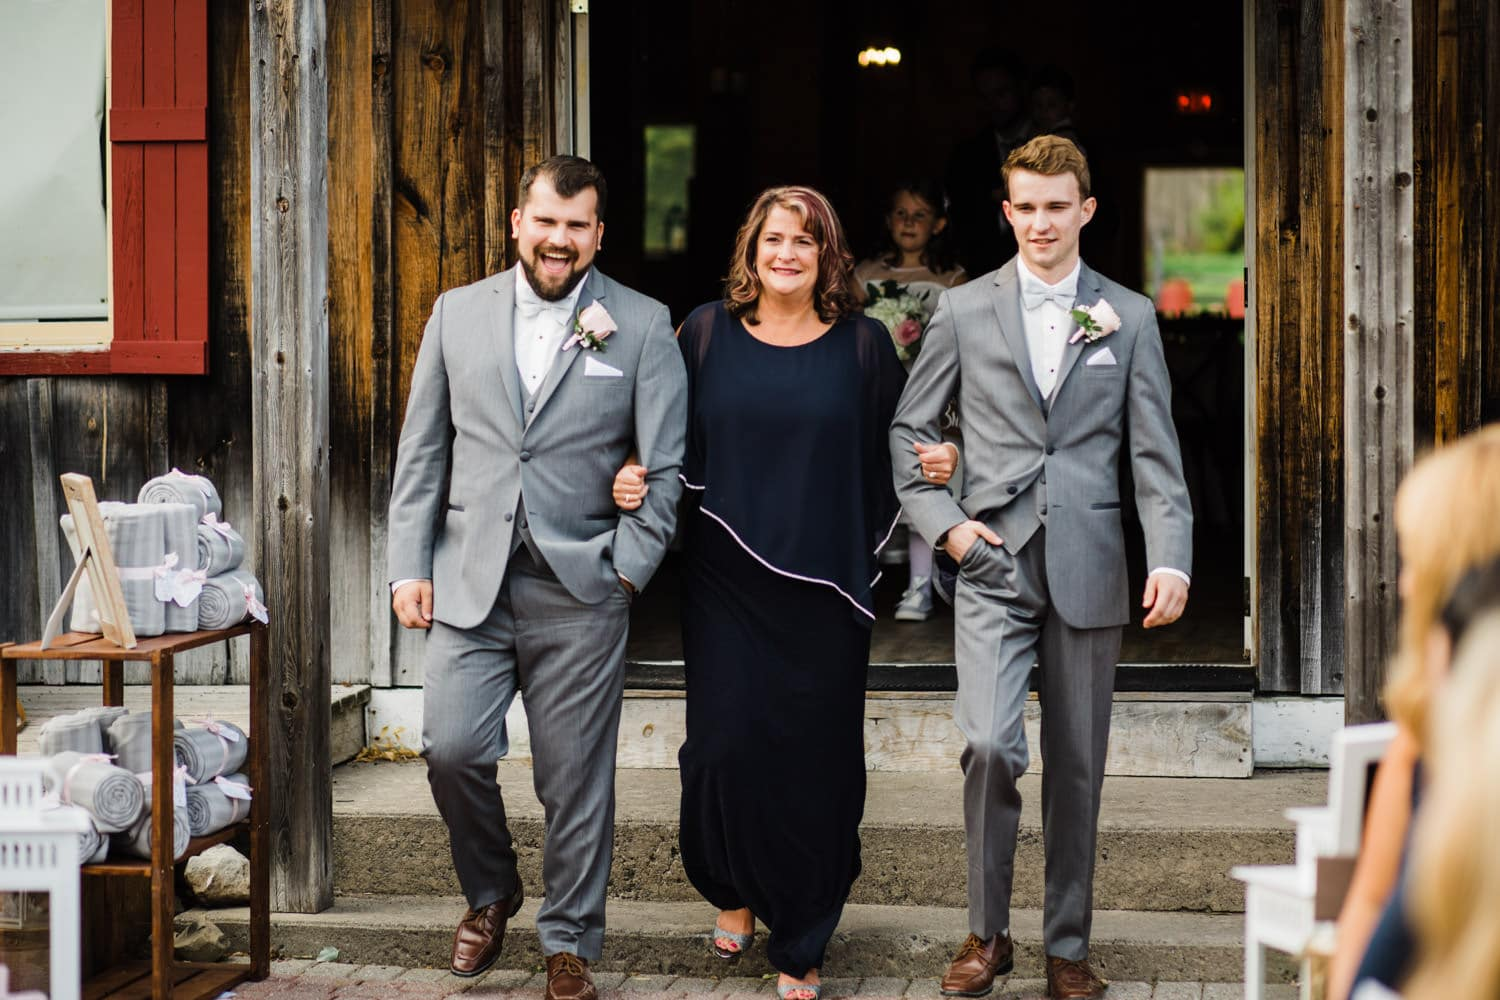 mother of the bride walks down the aisle